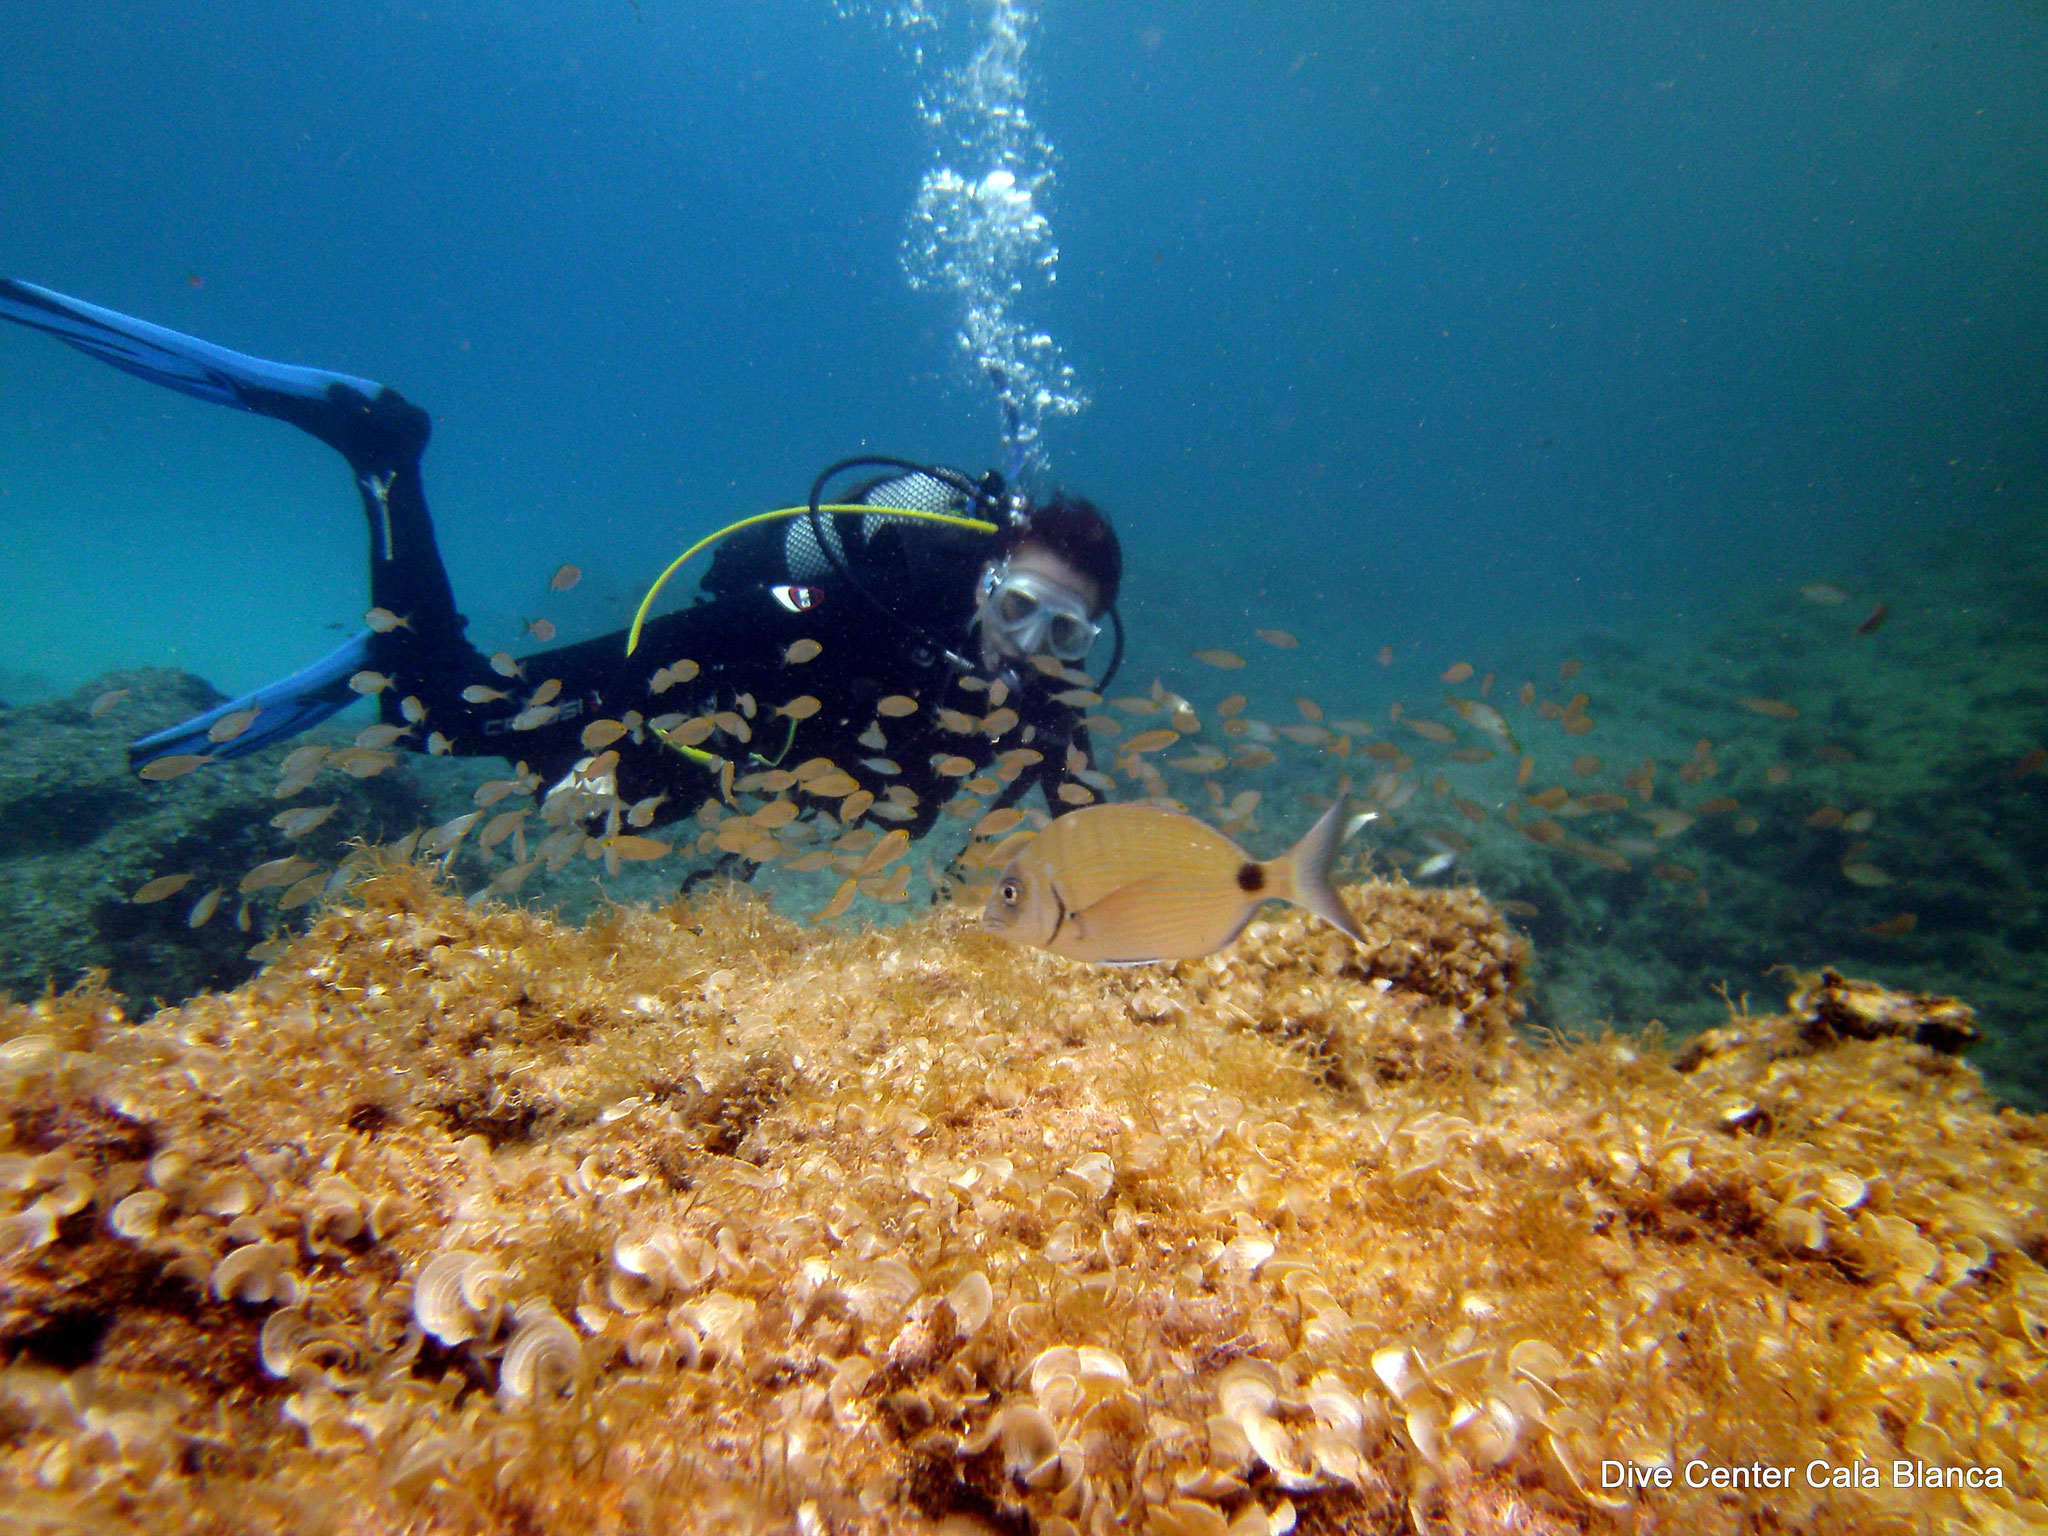 SSI Try Dive in Cala Blanca